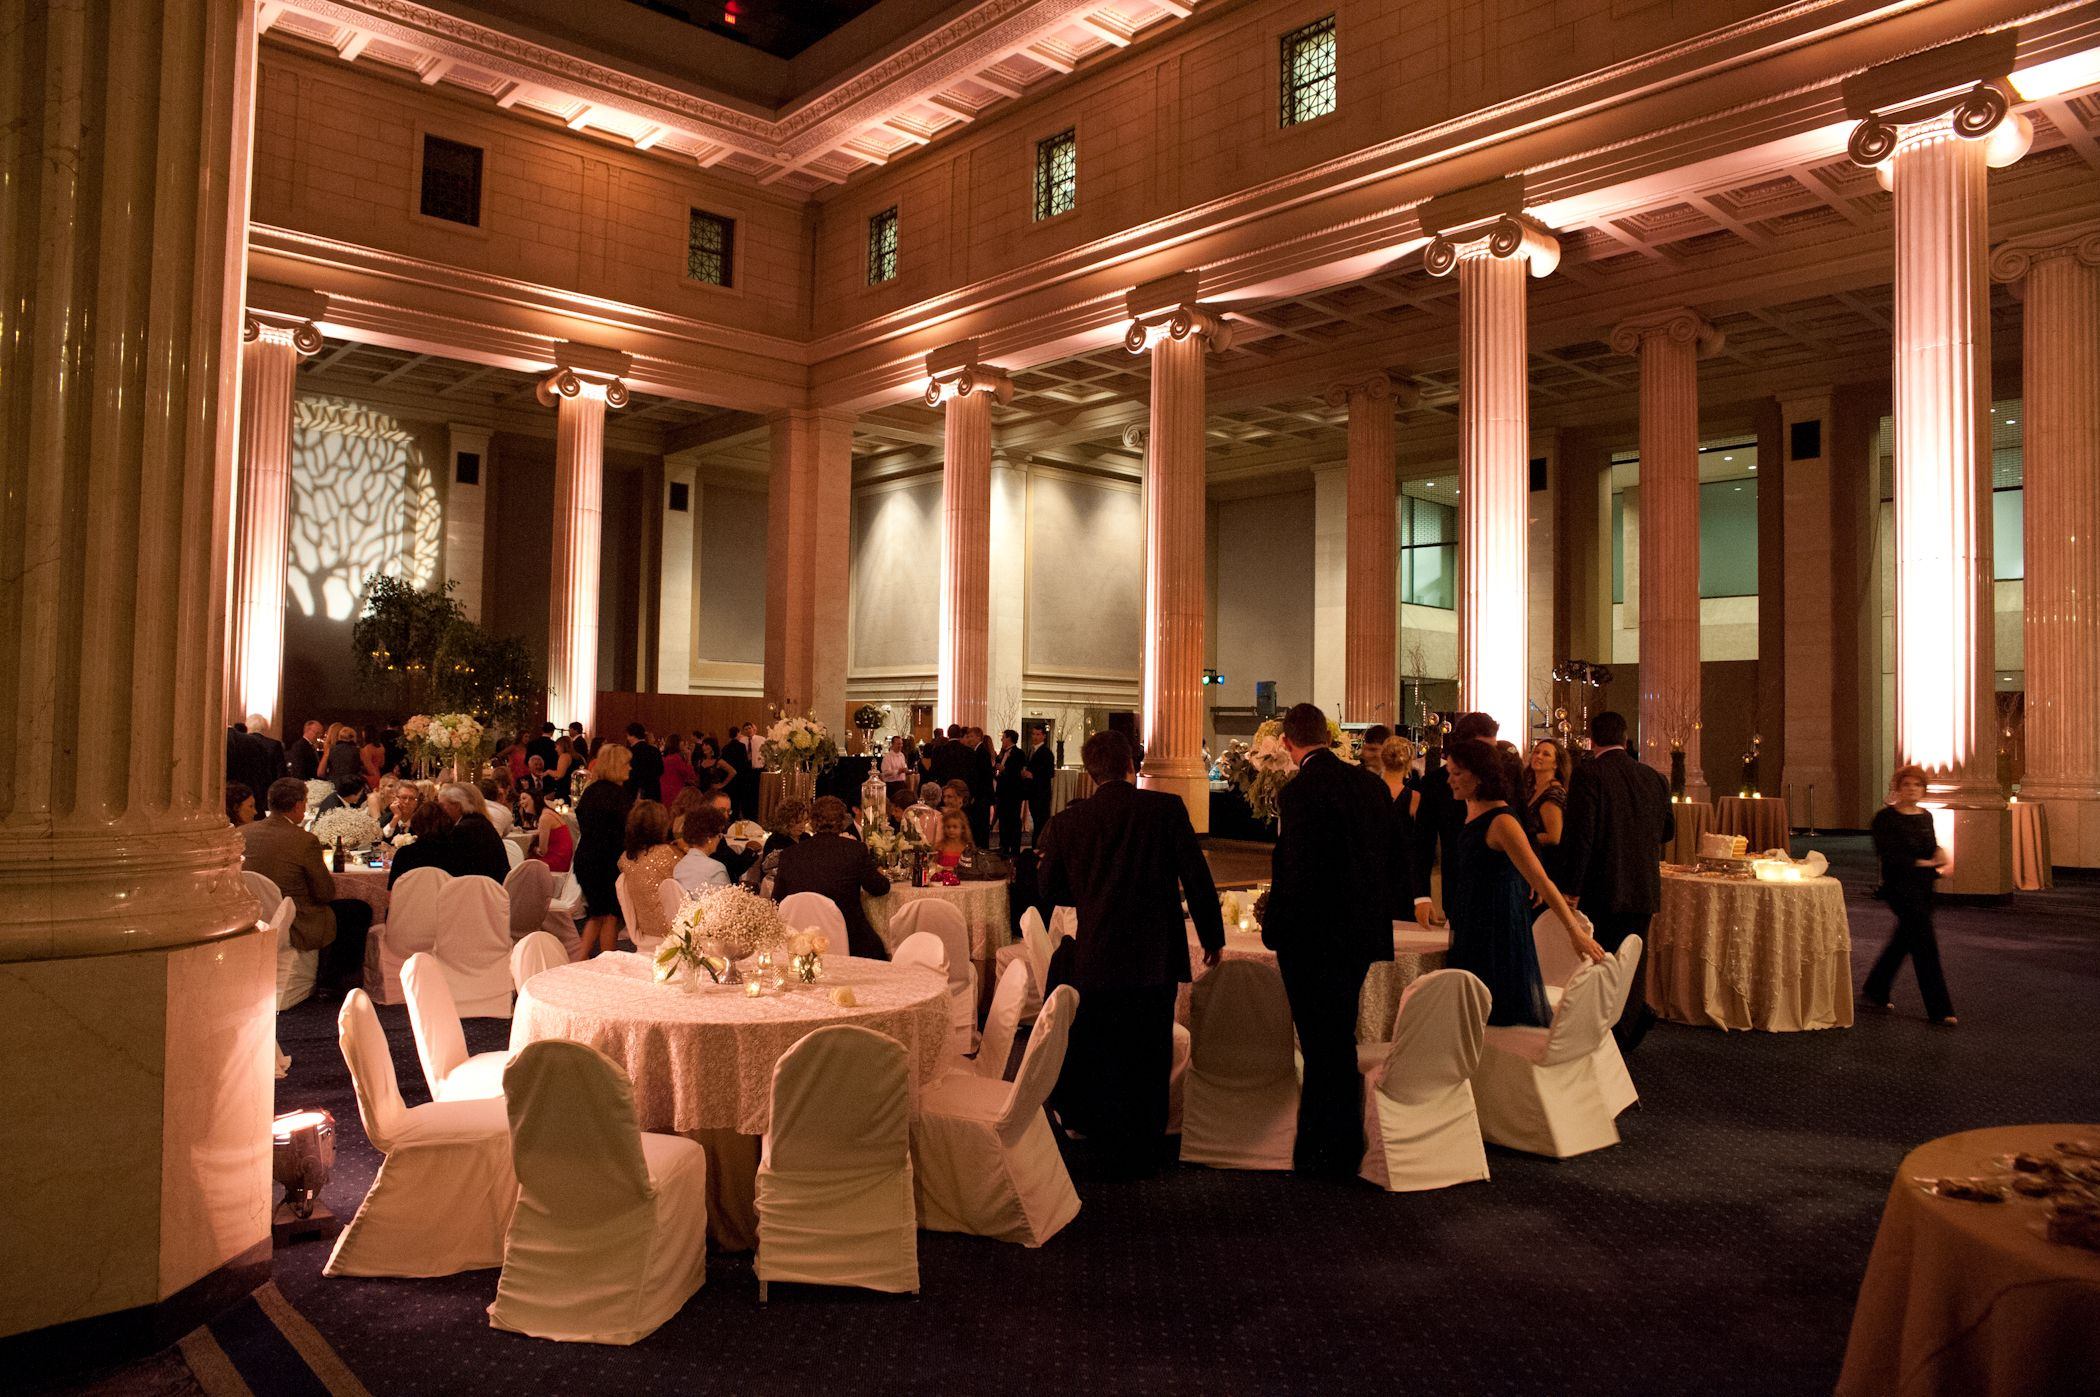 The Columns Wedding By Southern Event Planners In Memphis Tennessee Photo Courtesy Snap Hy